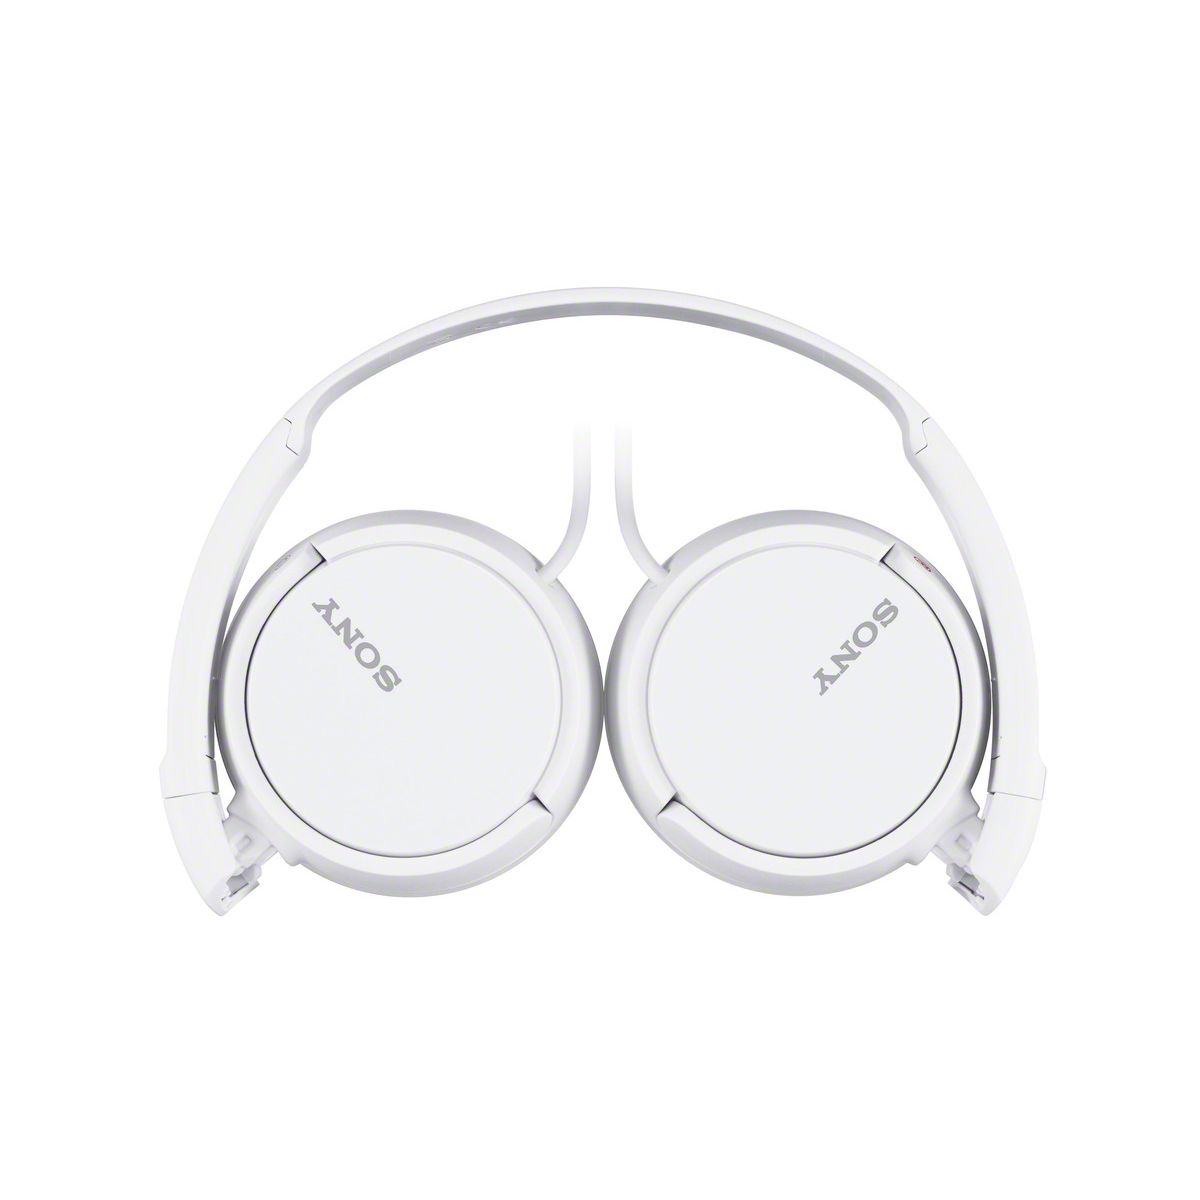 Casque audio sony mdrzx110 blanc (photo)